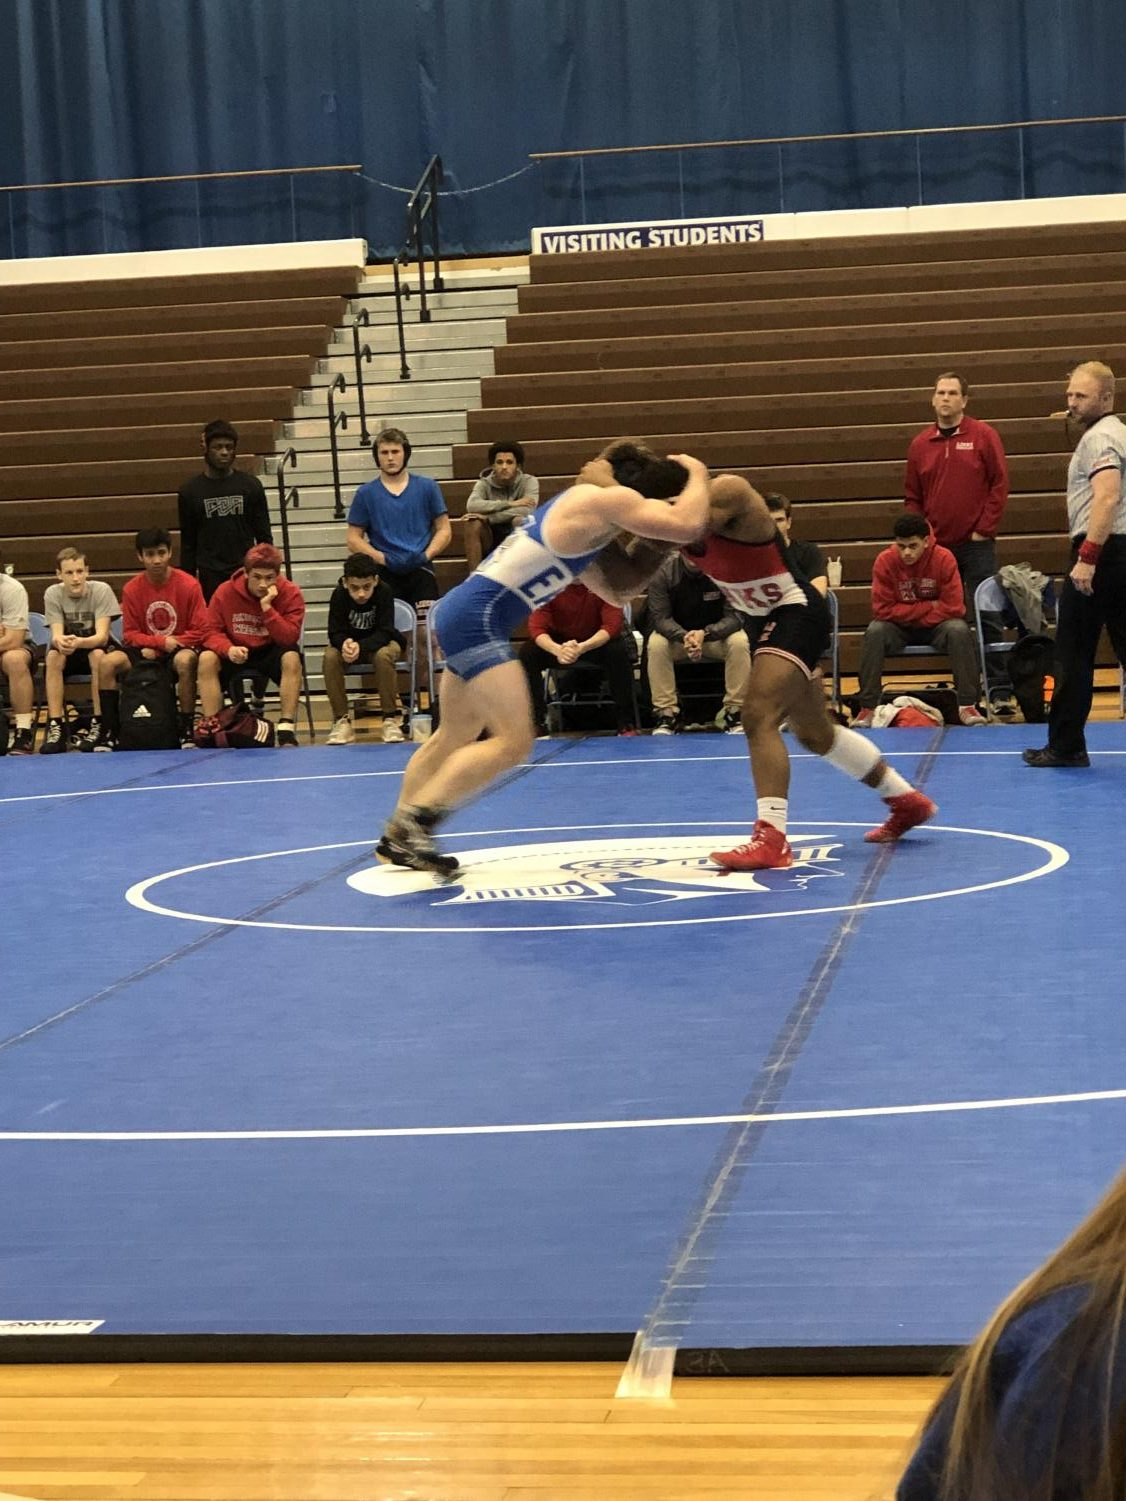 Lincoln East junior Grant Lyman vs. Lincoln High senior and Husker wrestling commit Isaiah Alford. Although Alford is ranked 1st in the state right now, Lyman (also ranked) put up quite a fight, nearly disturbing Alford's perfect win streak.